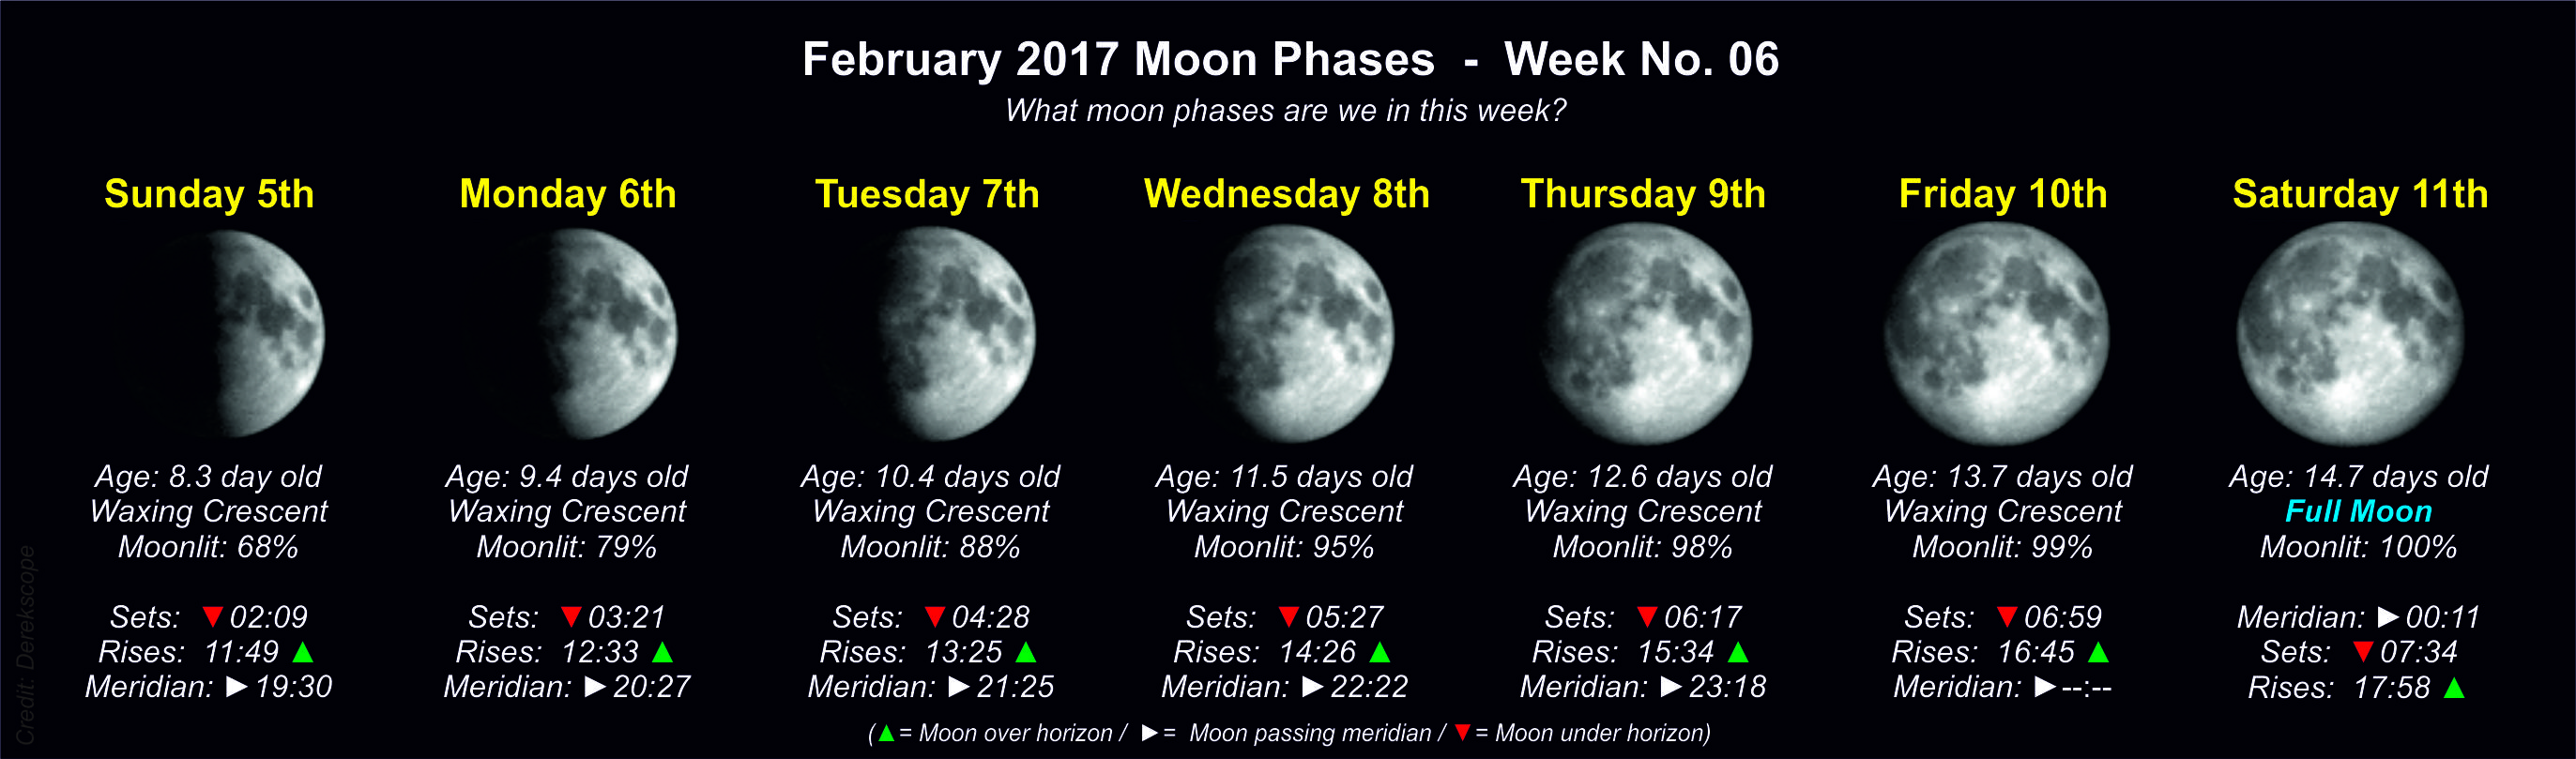 moon phases this week